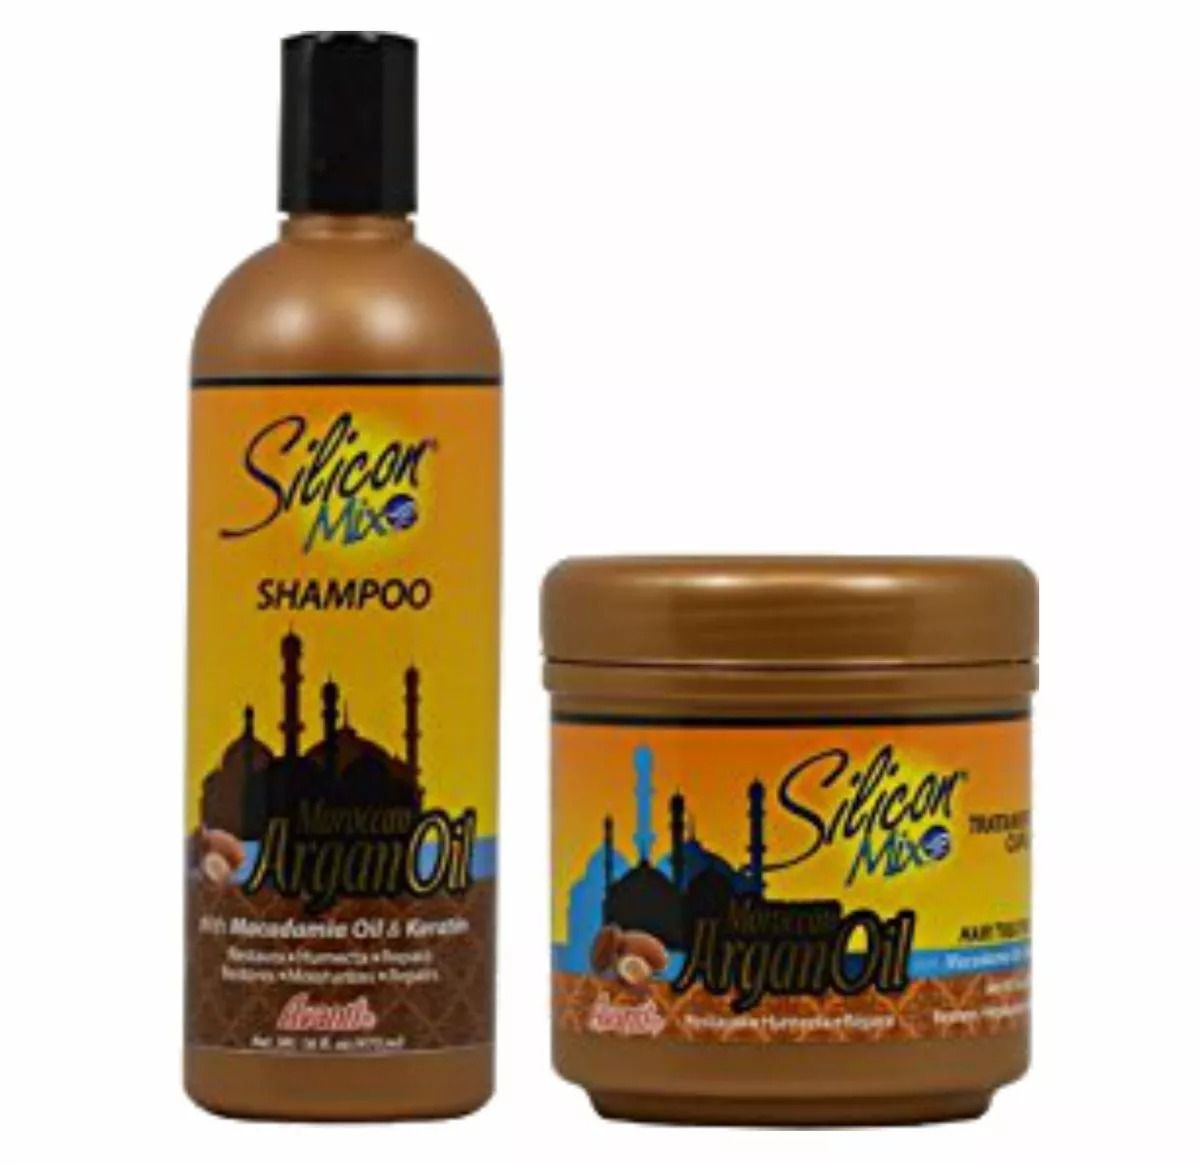 Silicon Mix Moroccan Argan Oil Shampoo 473ml + Máscara 450gr